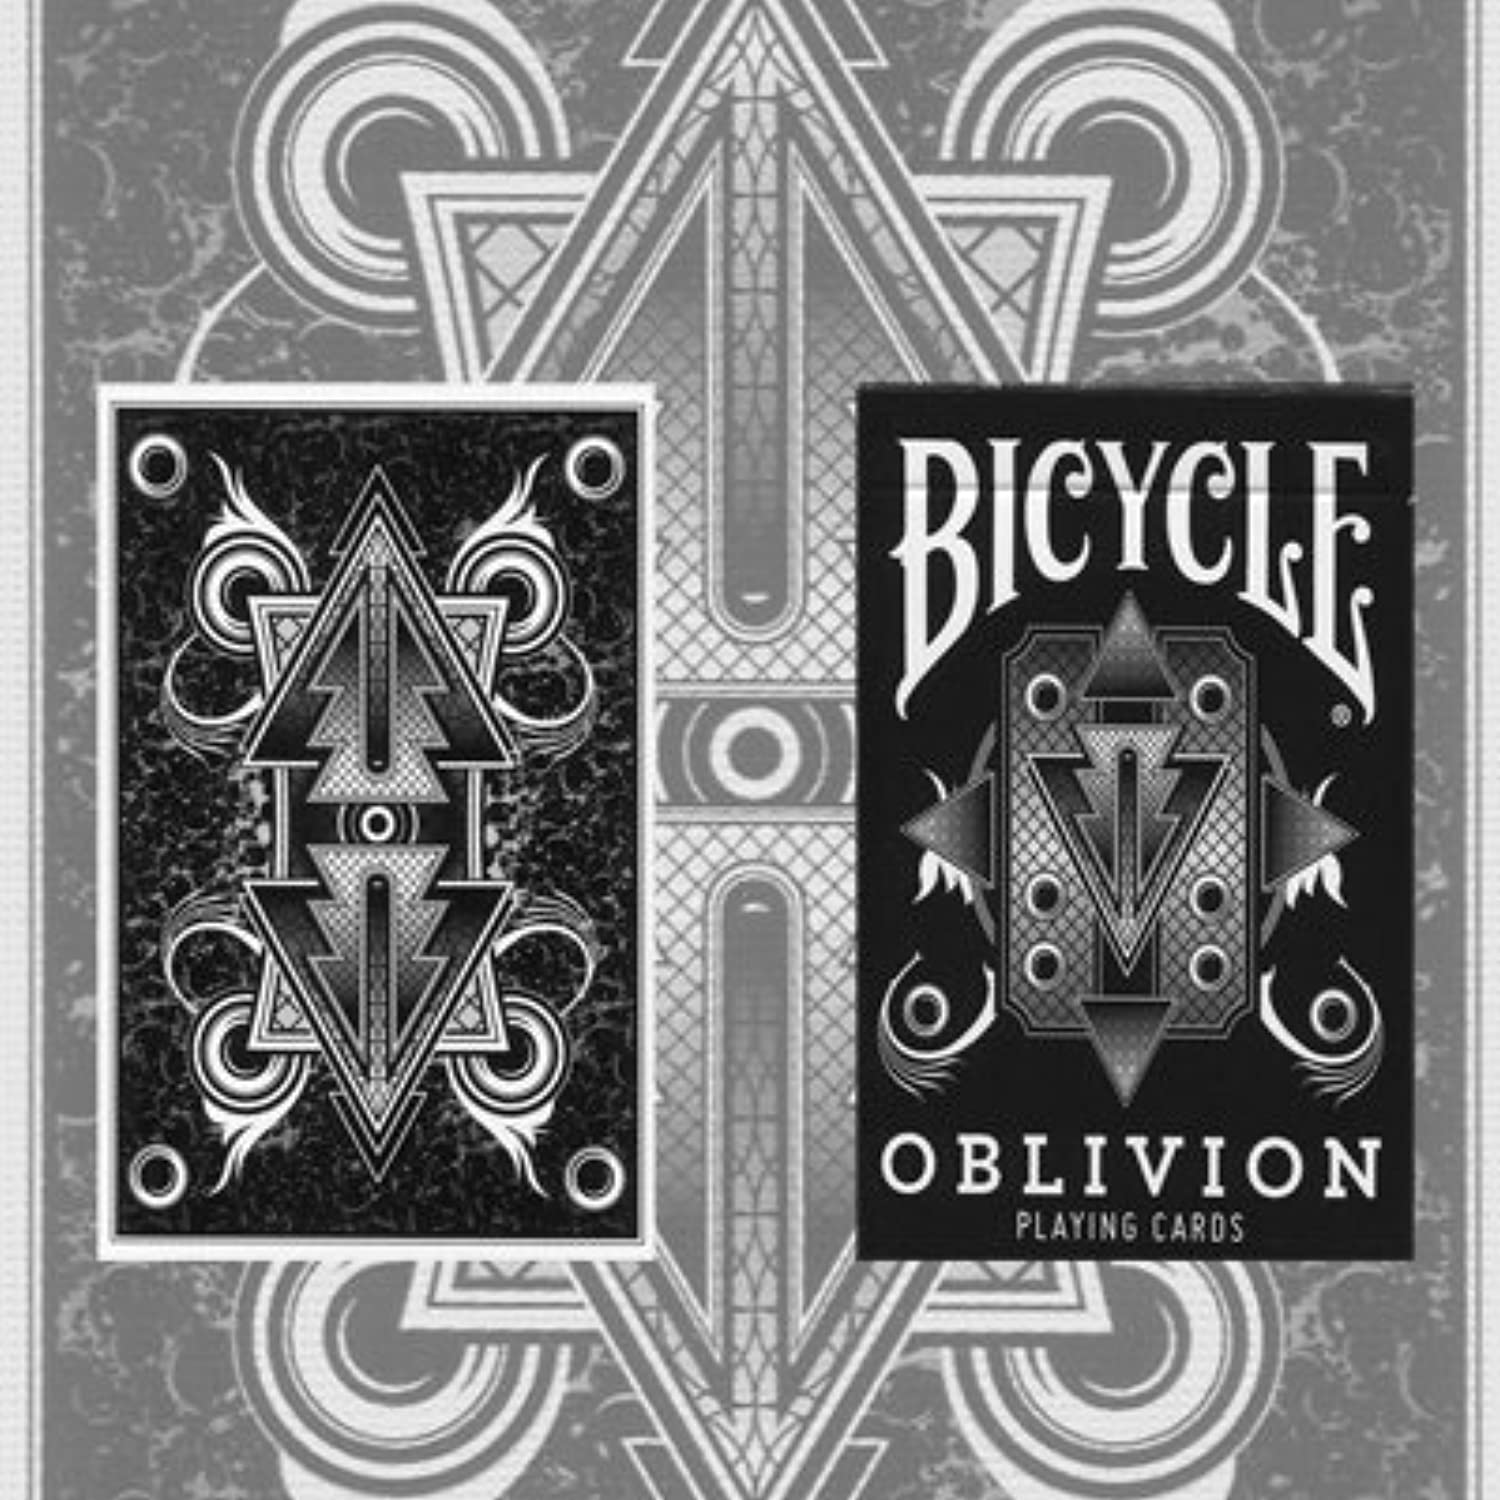 1st Run Bicycle Oblivion Deck (Weiß) by US Playing Card Co. - Cards by CARDSBICOBLIV_WHI B017CEQKAU Auktion  | Sehr gute Qualität